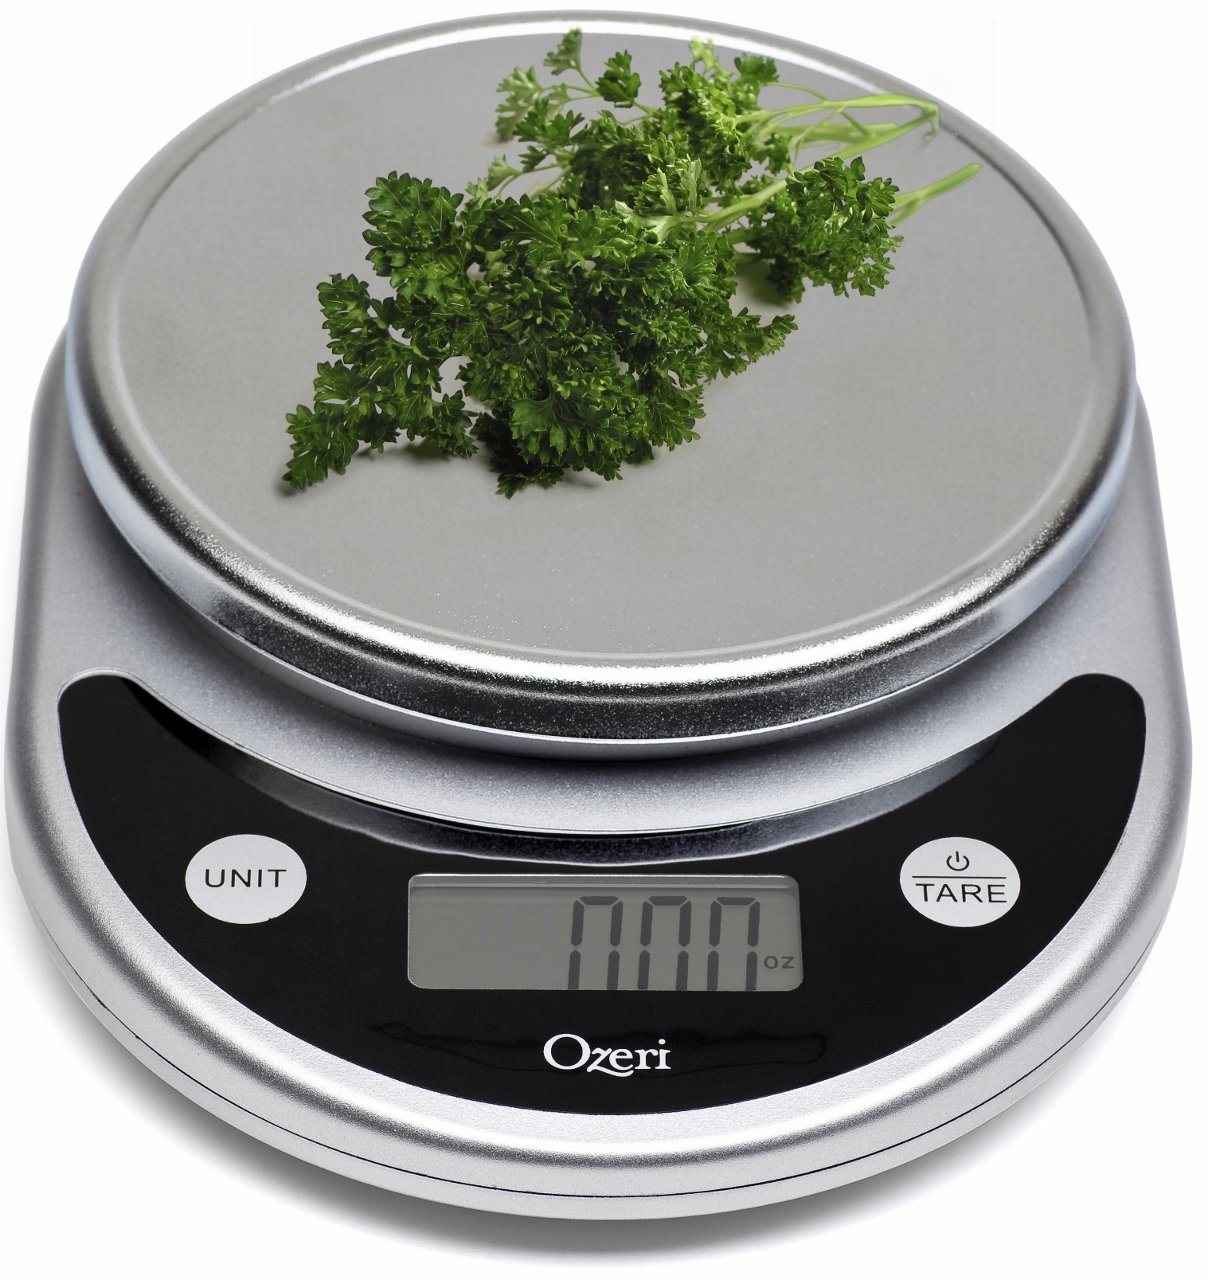 Ozeri ZK14-S Pronto Digital Multifunction Kitchen and Food Scale